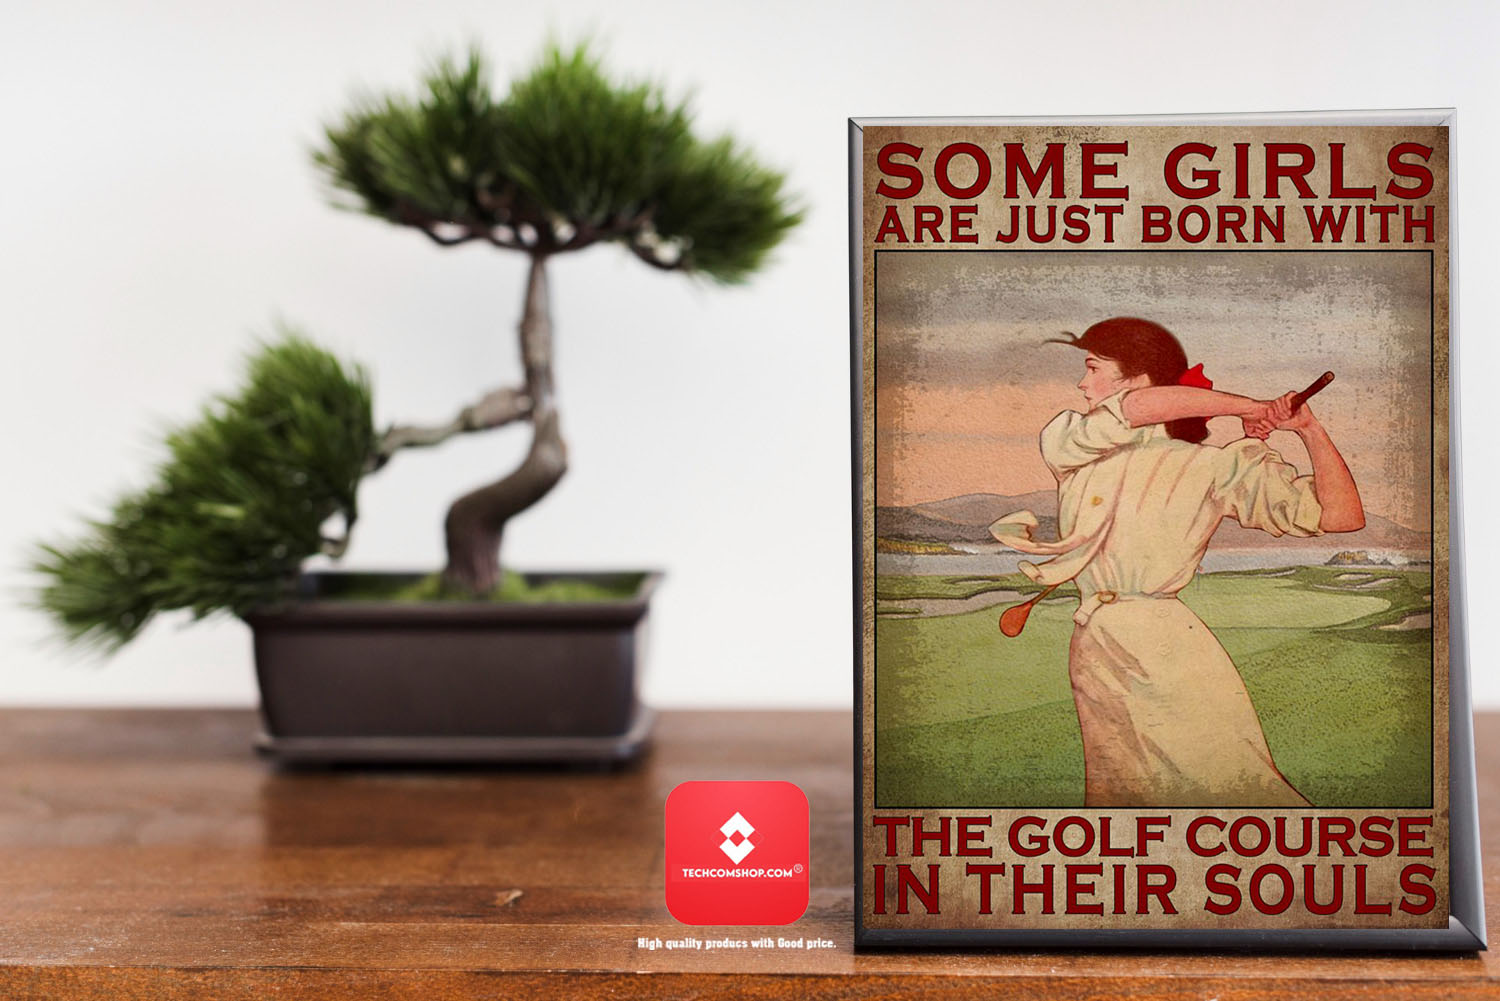 Some girls are just born with the golf course in their souls poster 7